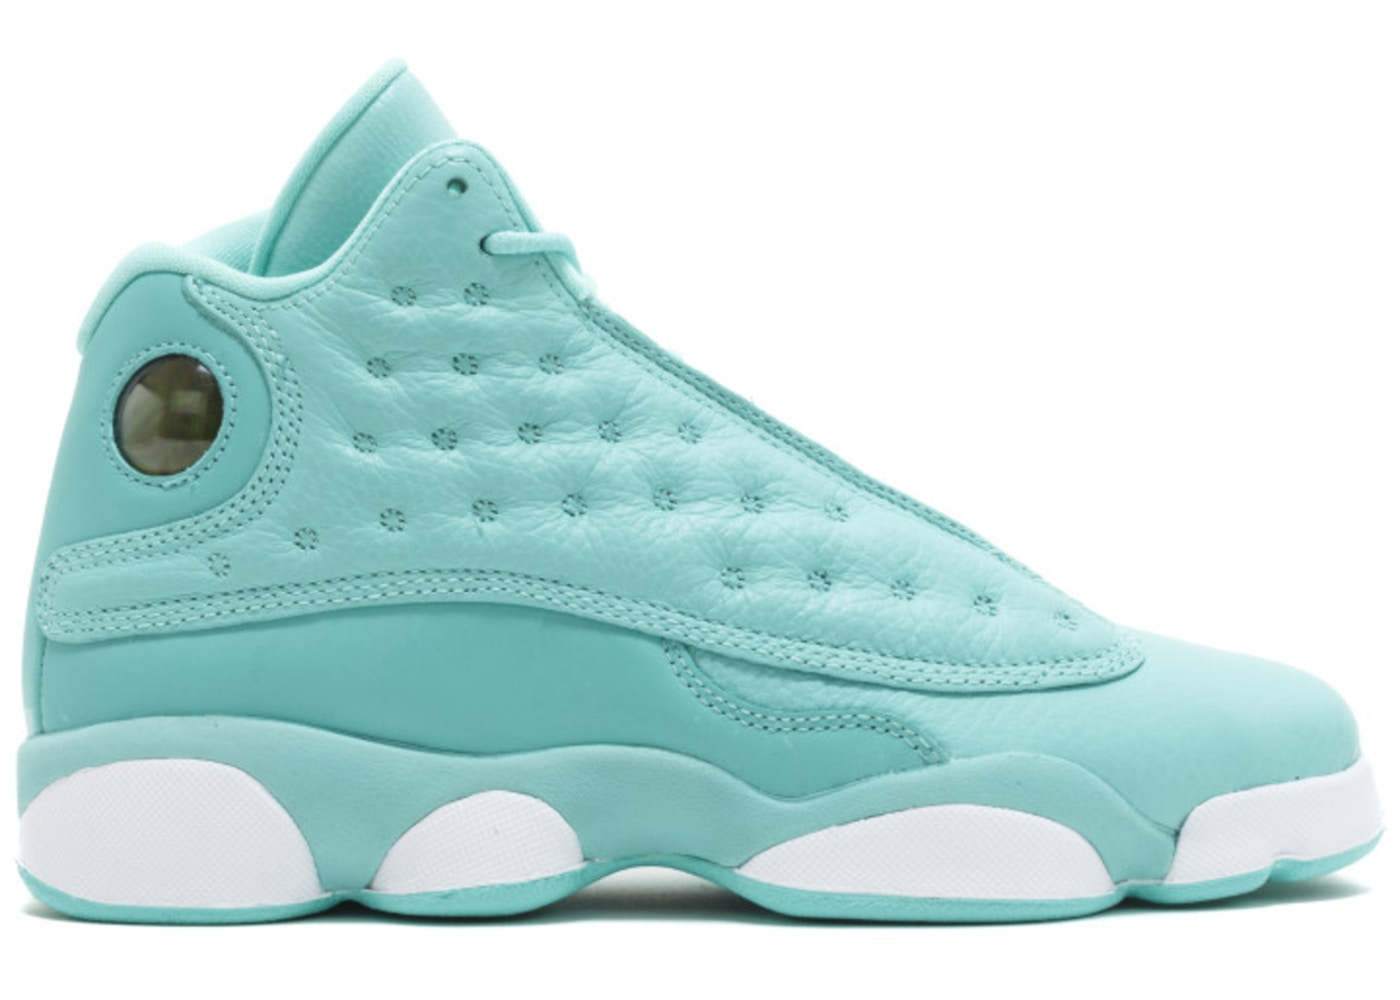 lowest price e0392 cd214 Jordan 13 Retro What Is Love Pack (GS) - 888165-322